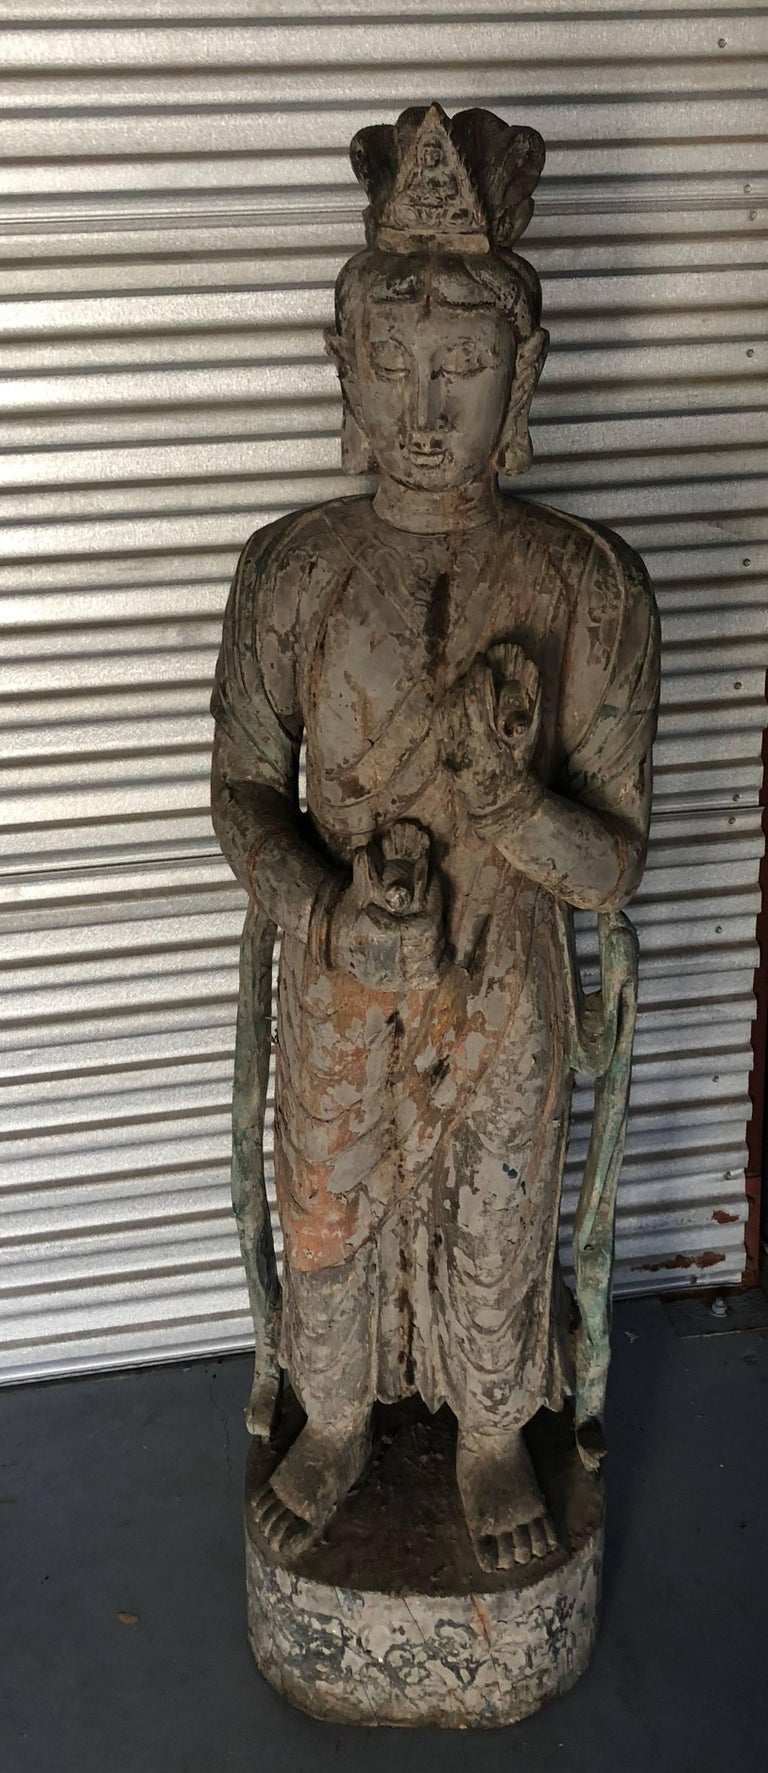 This Ming dynasty style Guan Yin statue is hand-carved, wooden and has been finished with a green lacquer Please see the enclosed certificate I received from the Veng Son Art Craft Company 10/12/02. She has birds in hand and ribbons flowing from her